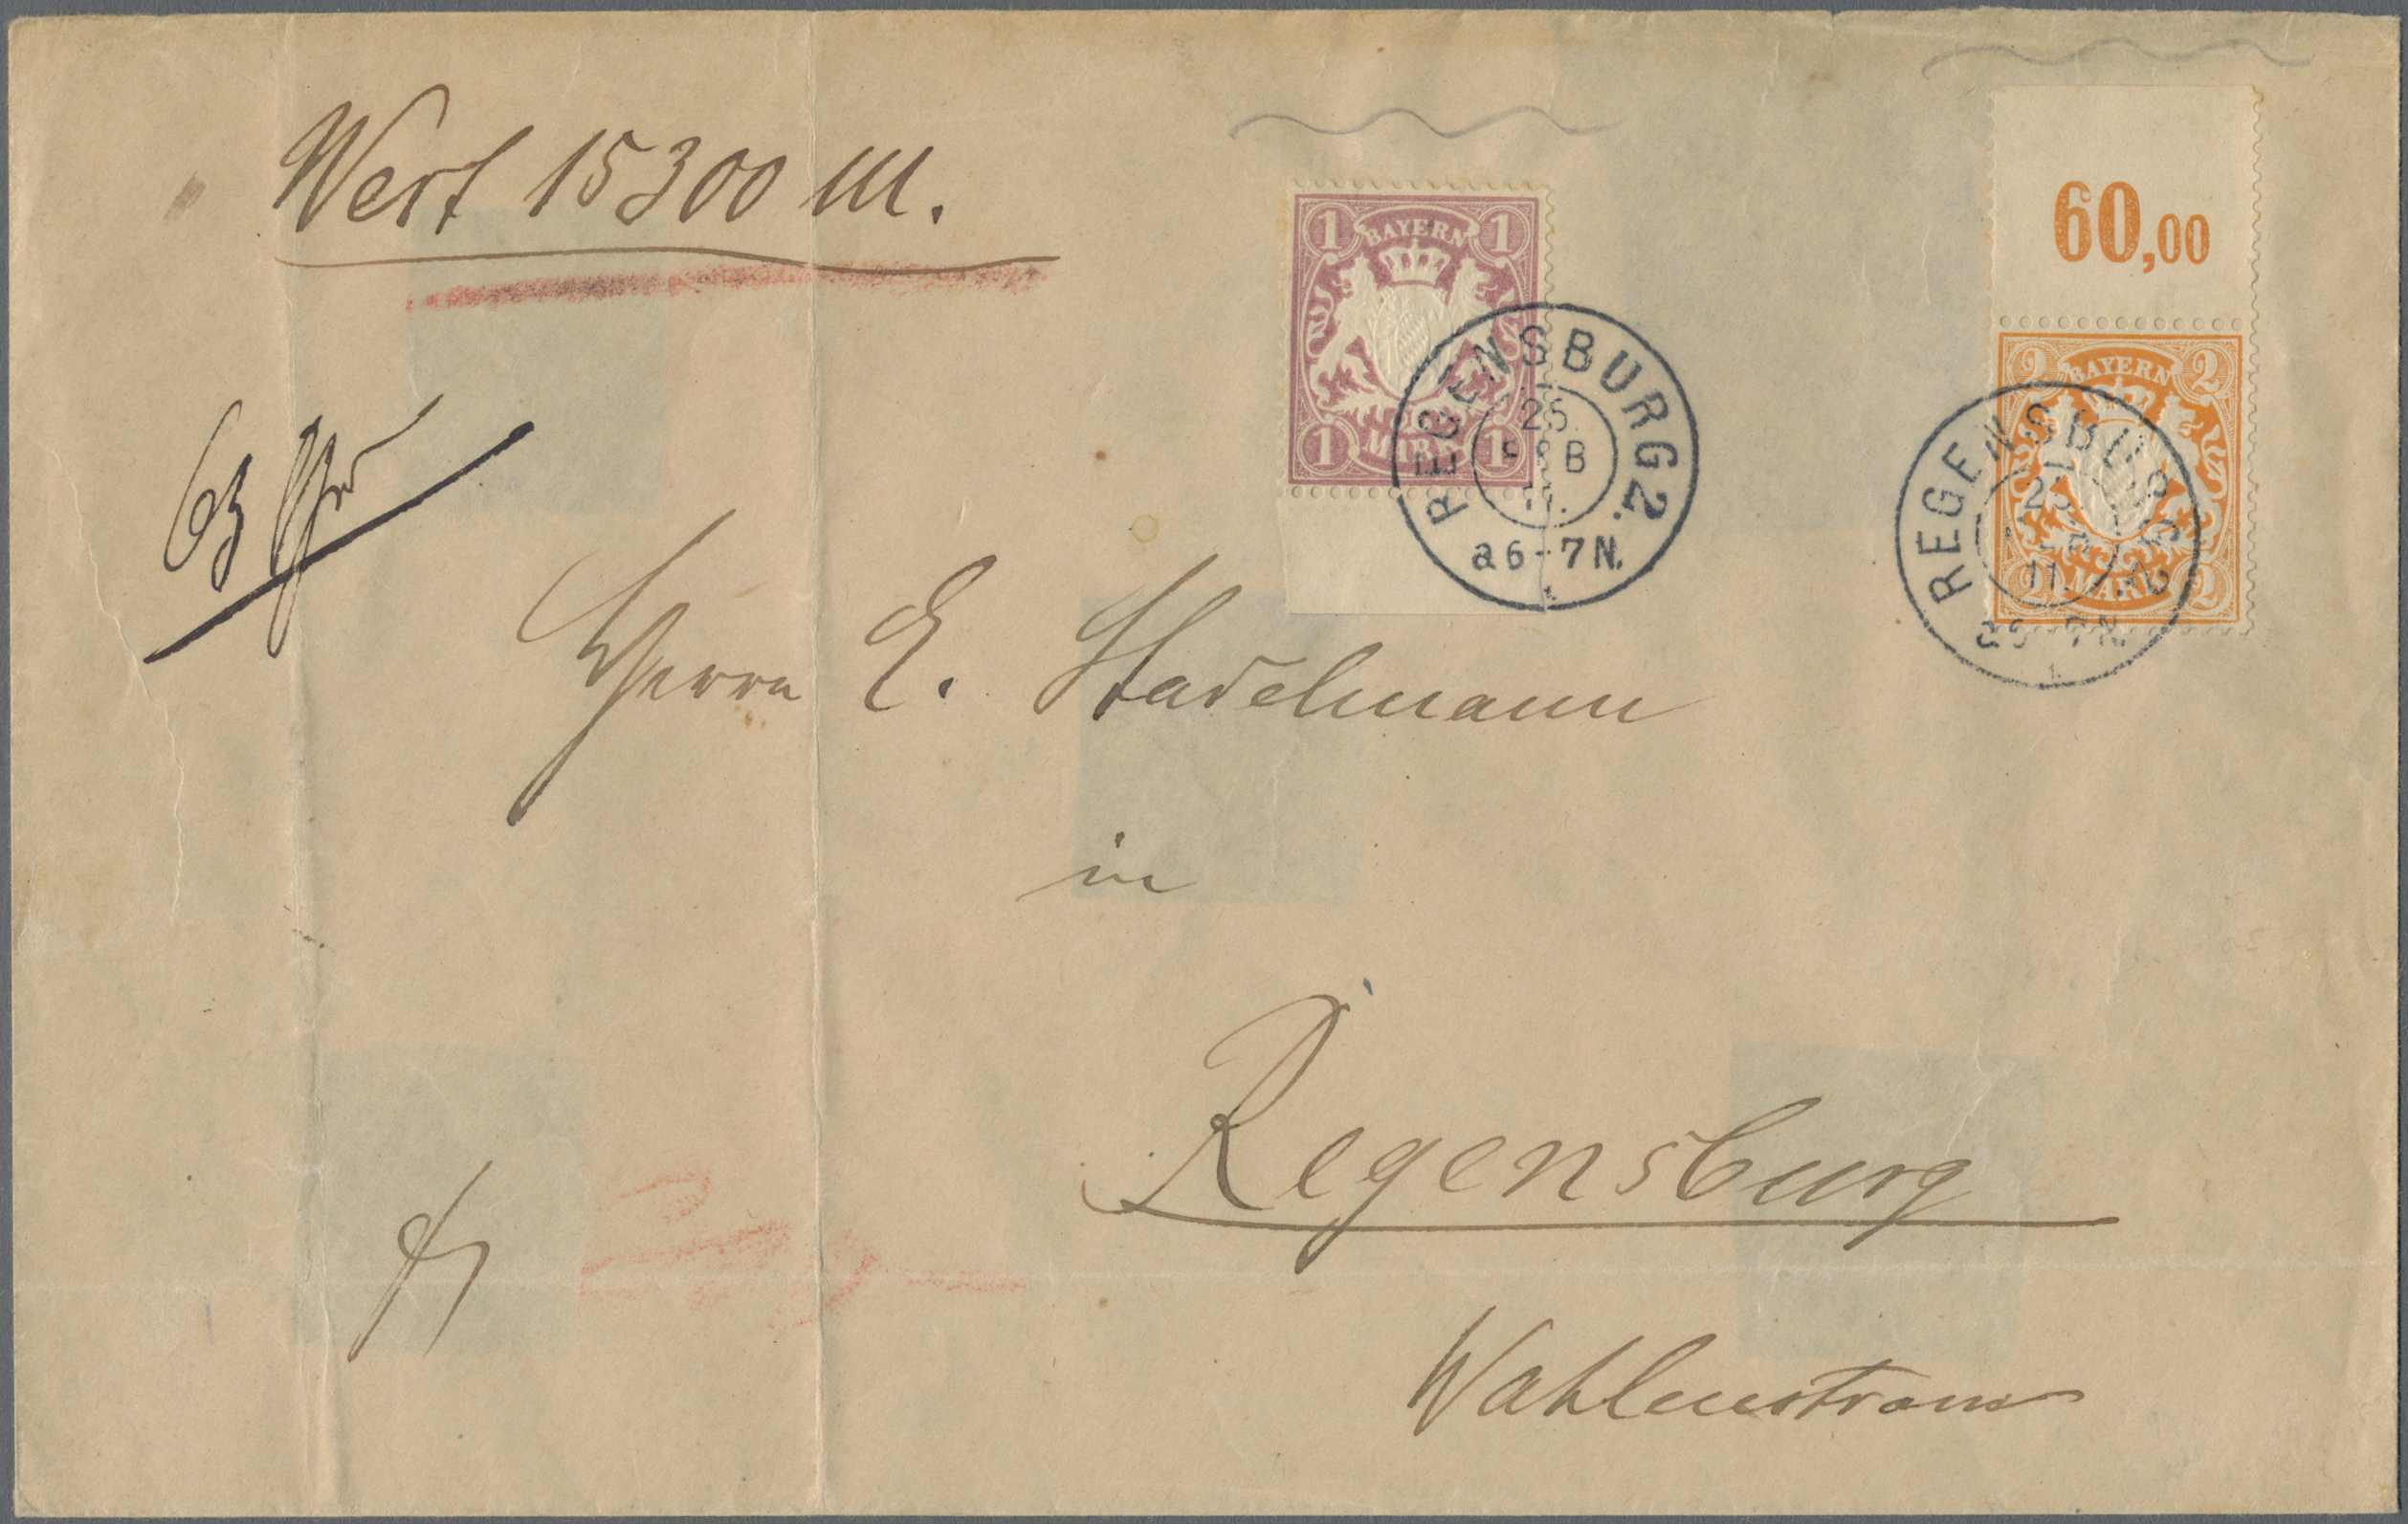 Lot 13593 - Bayern - Marken und Briefe  -  Auktionshaus Christoph Gärtner GmbH & Co. KG Sale #46 Single lots Germany - and picture post cards